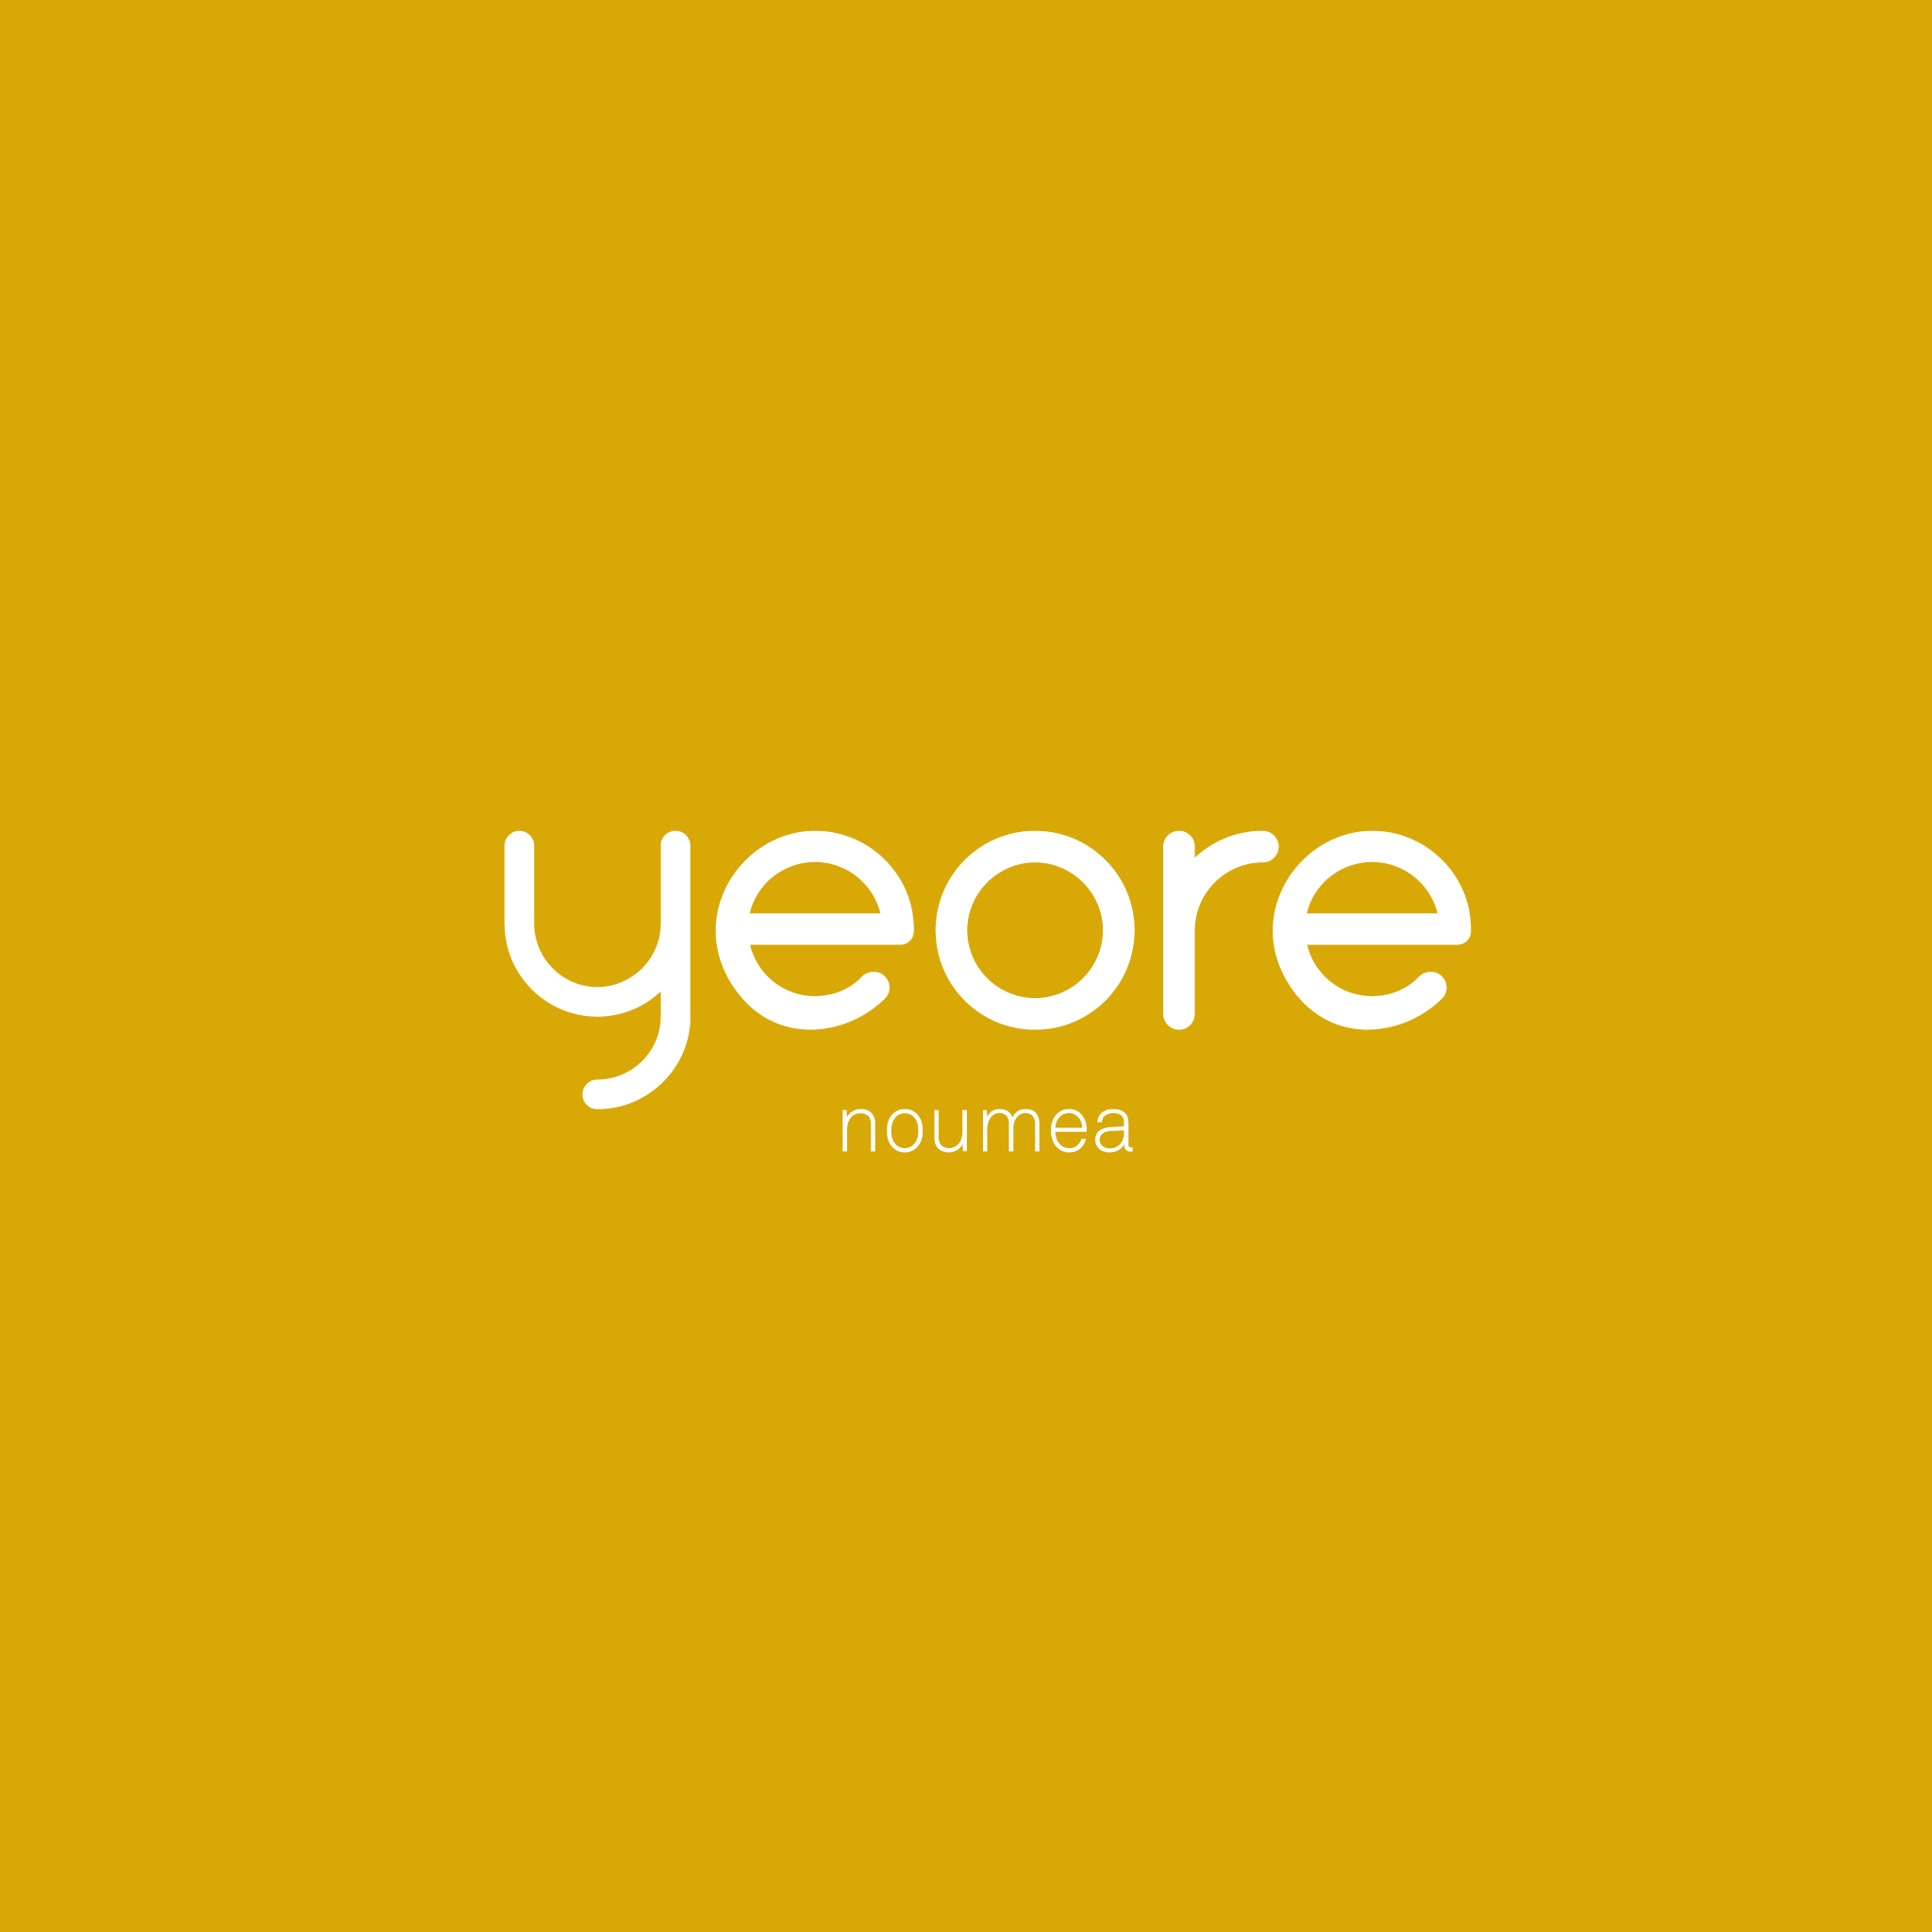 yeore-FINAL-2048